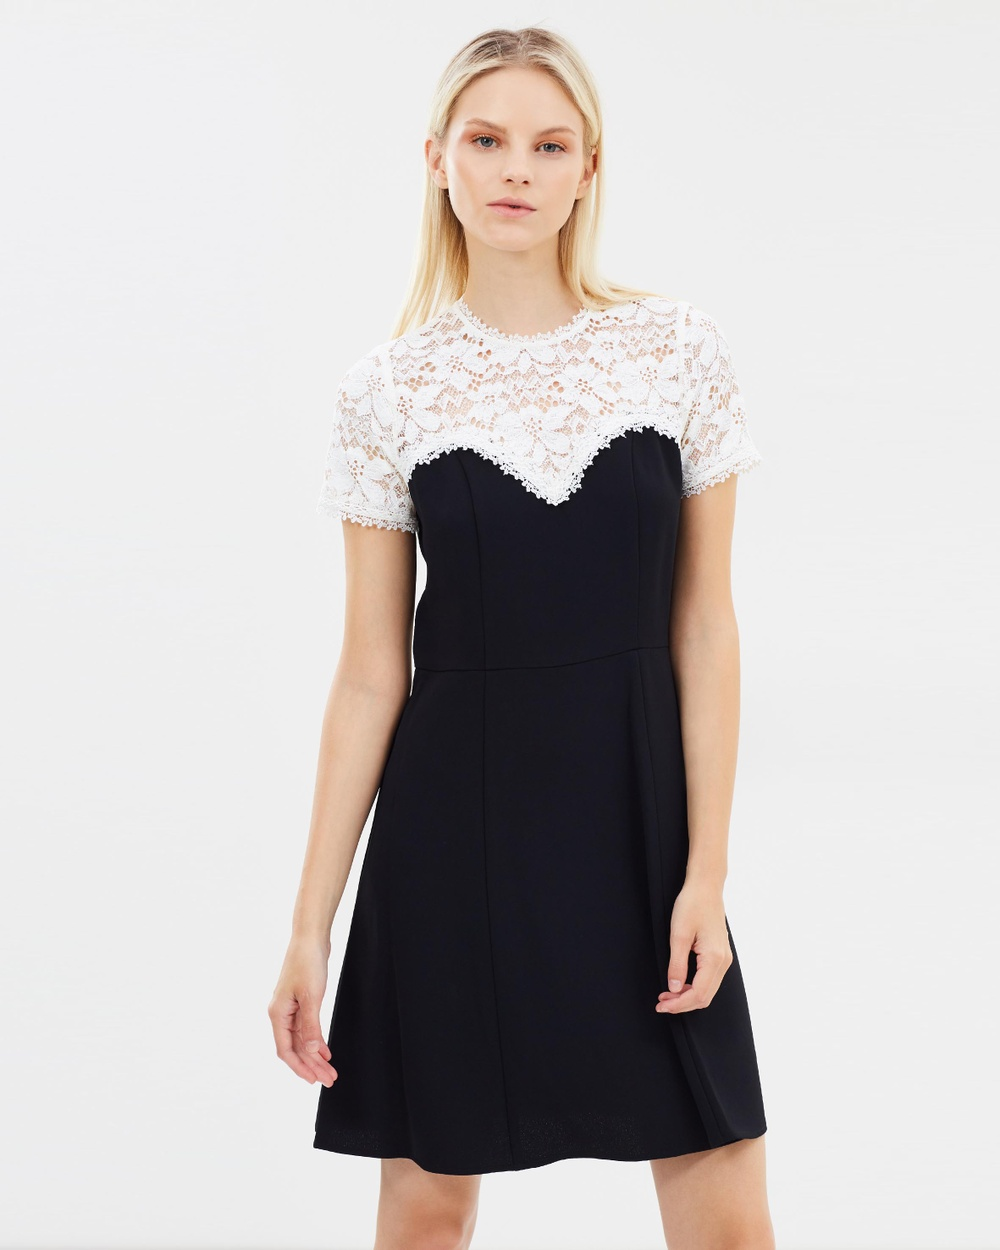 The Kooples Crepe Dress With Lace Top Dresses Black Crepe Dress With Lace Top